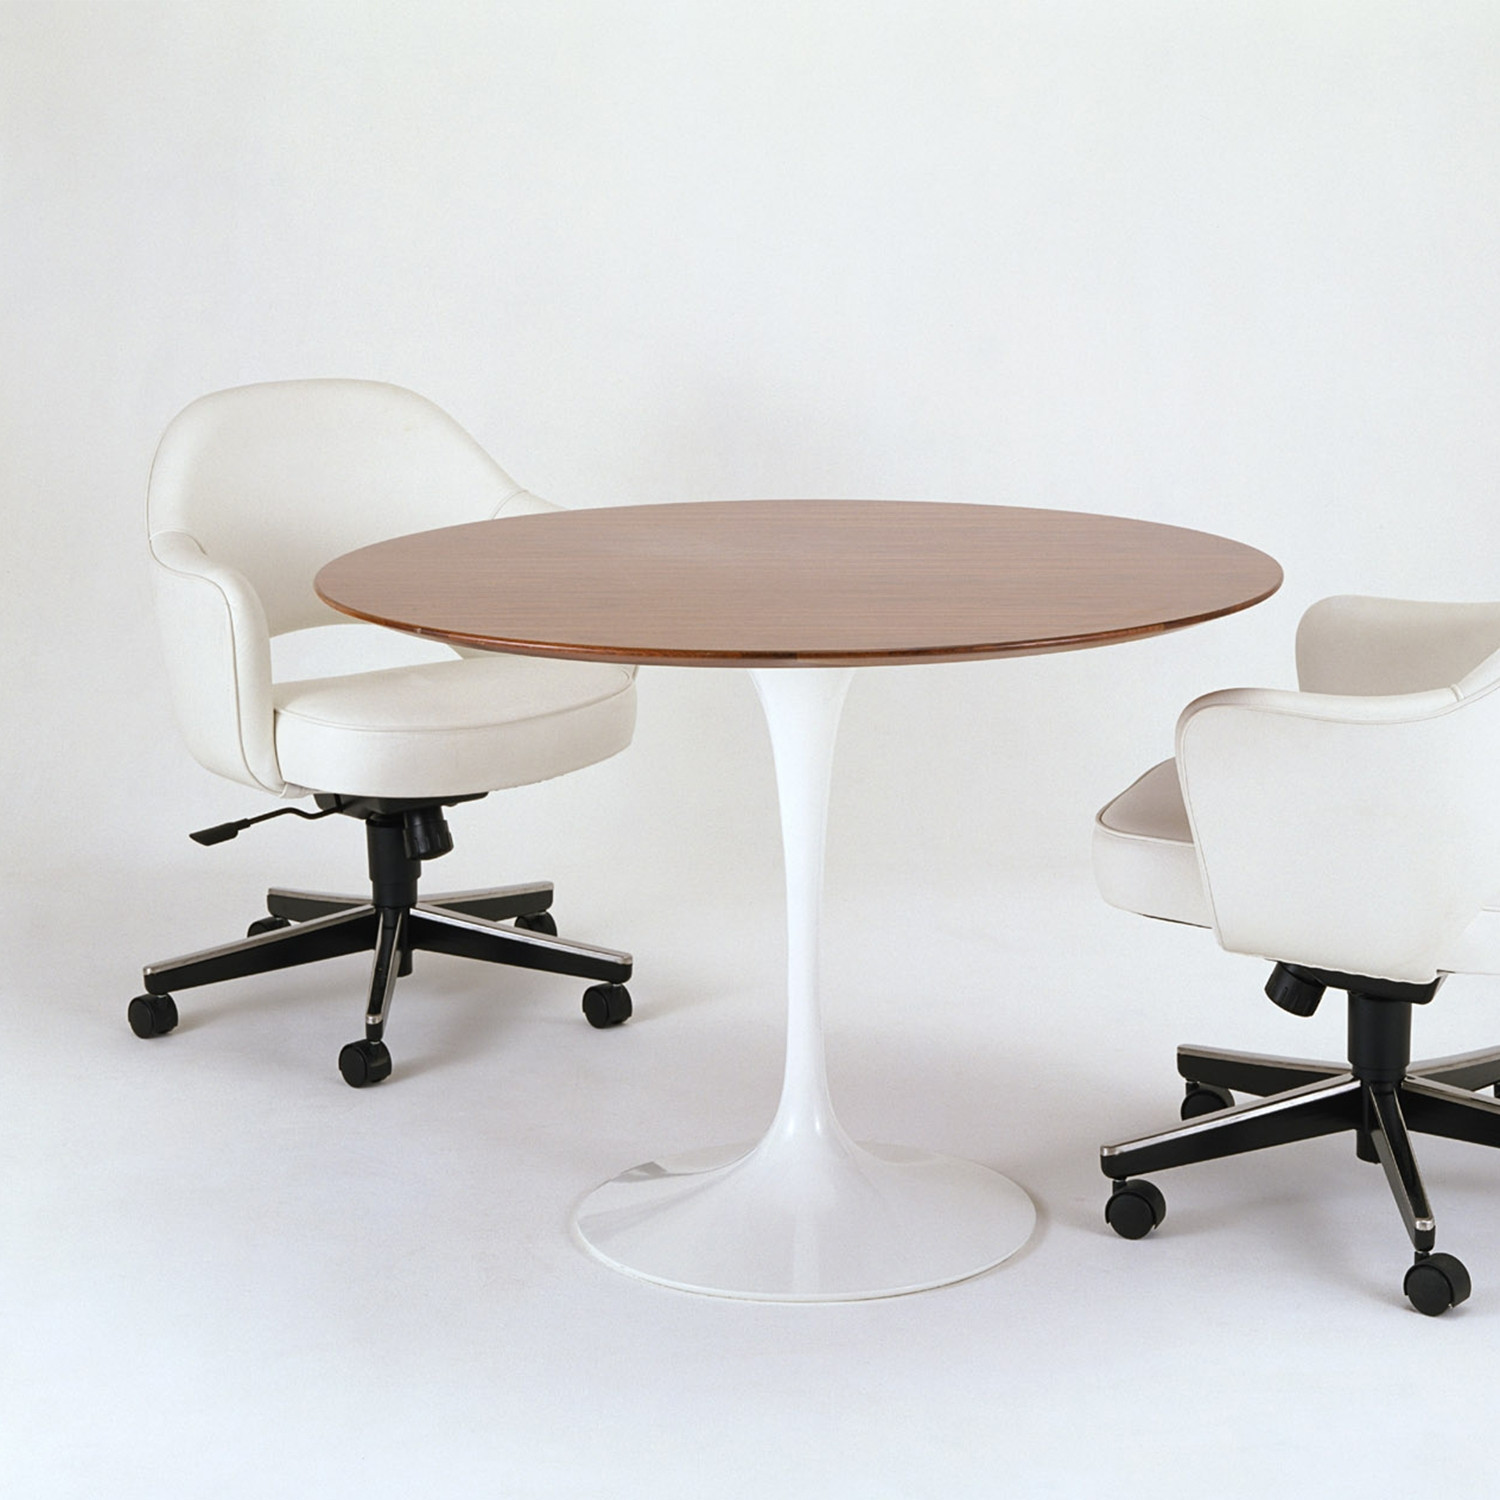 Saarinen Tables Dining Tables Apres Furniture